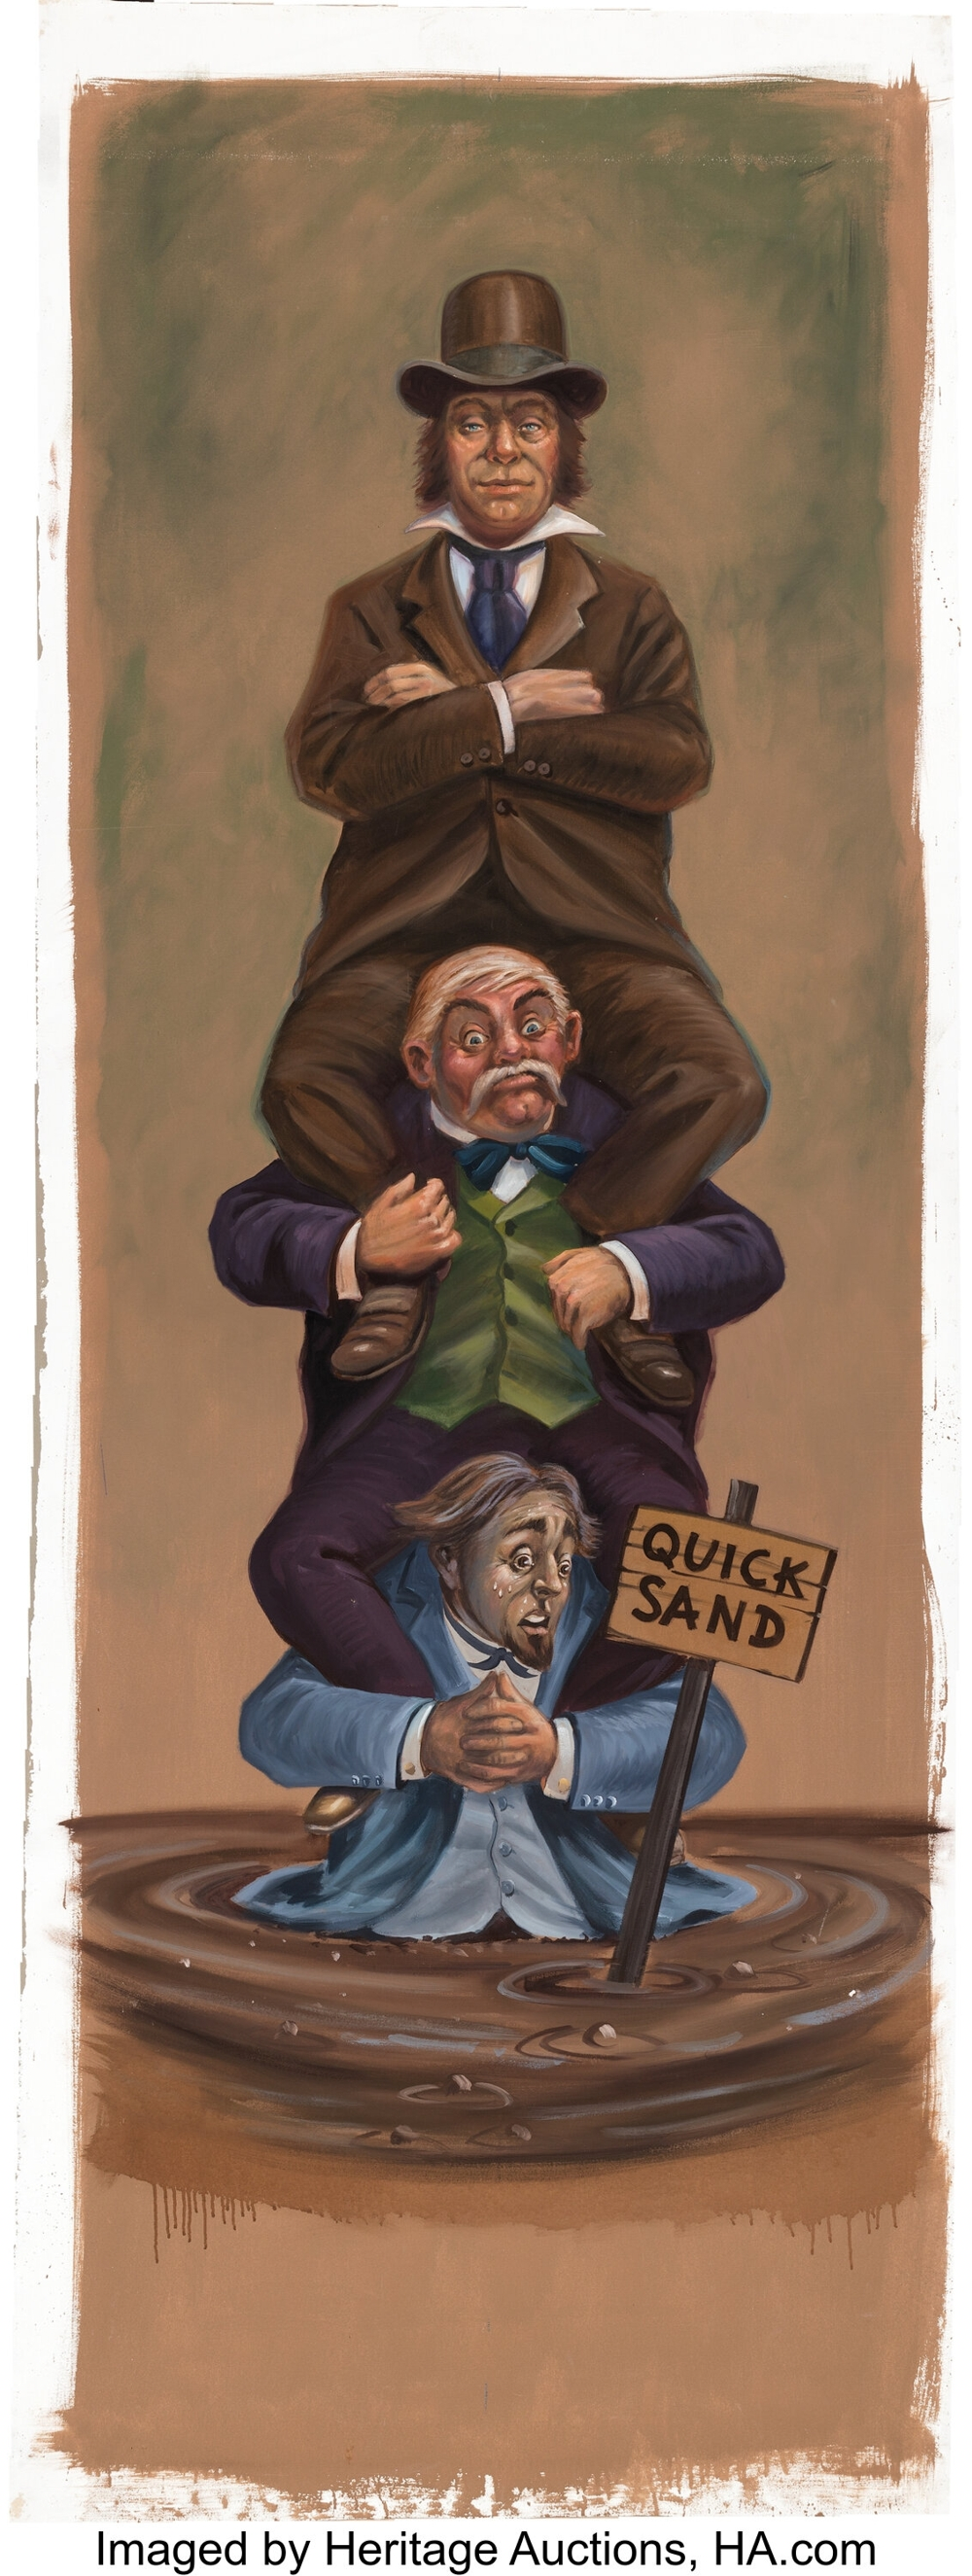 Haunted Mansion original stretching portrait gallery painting, by Clem Hall.